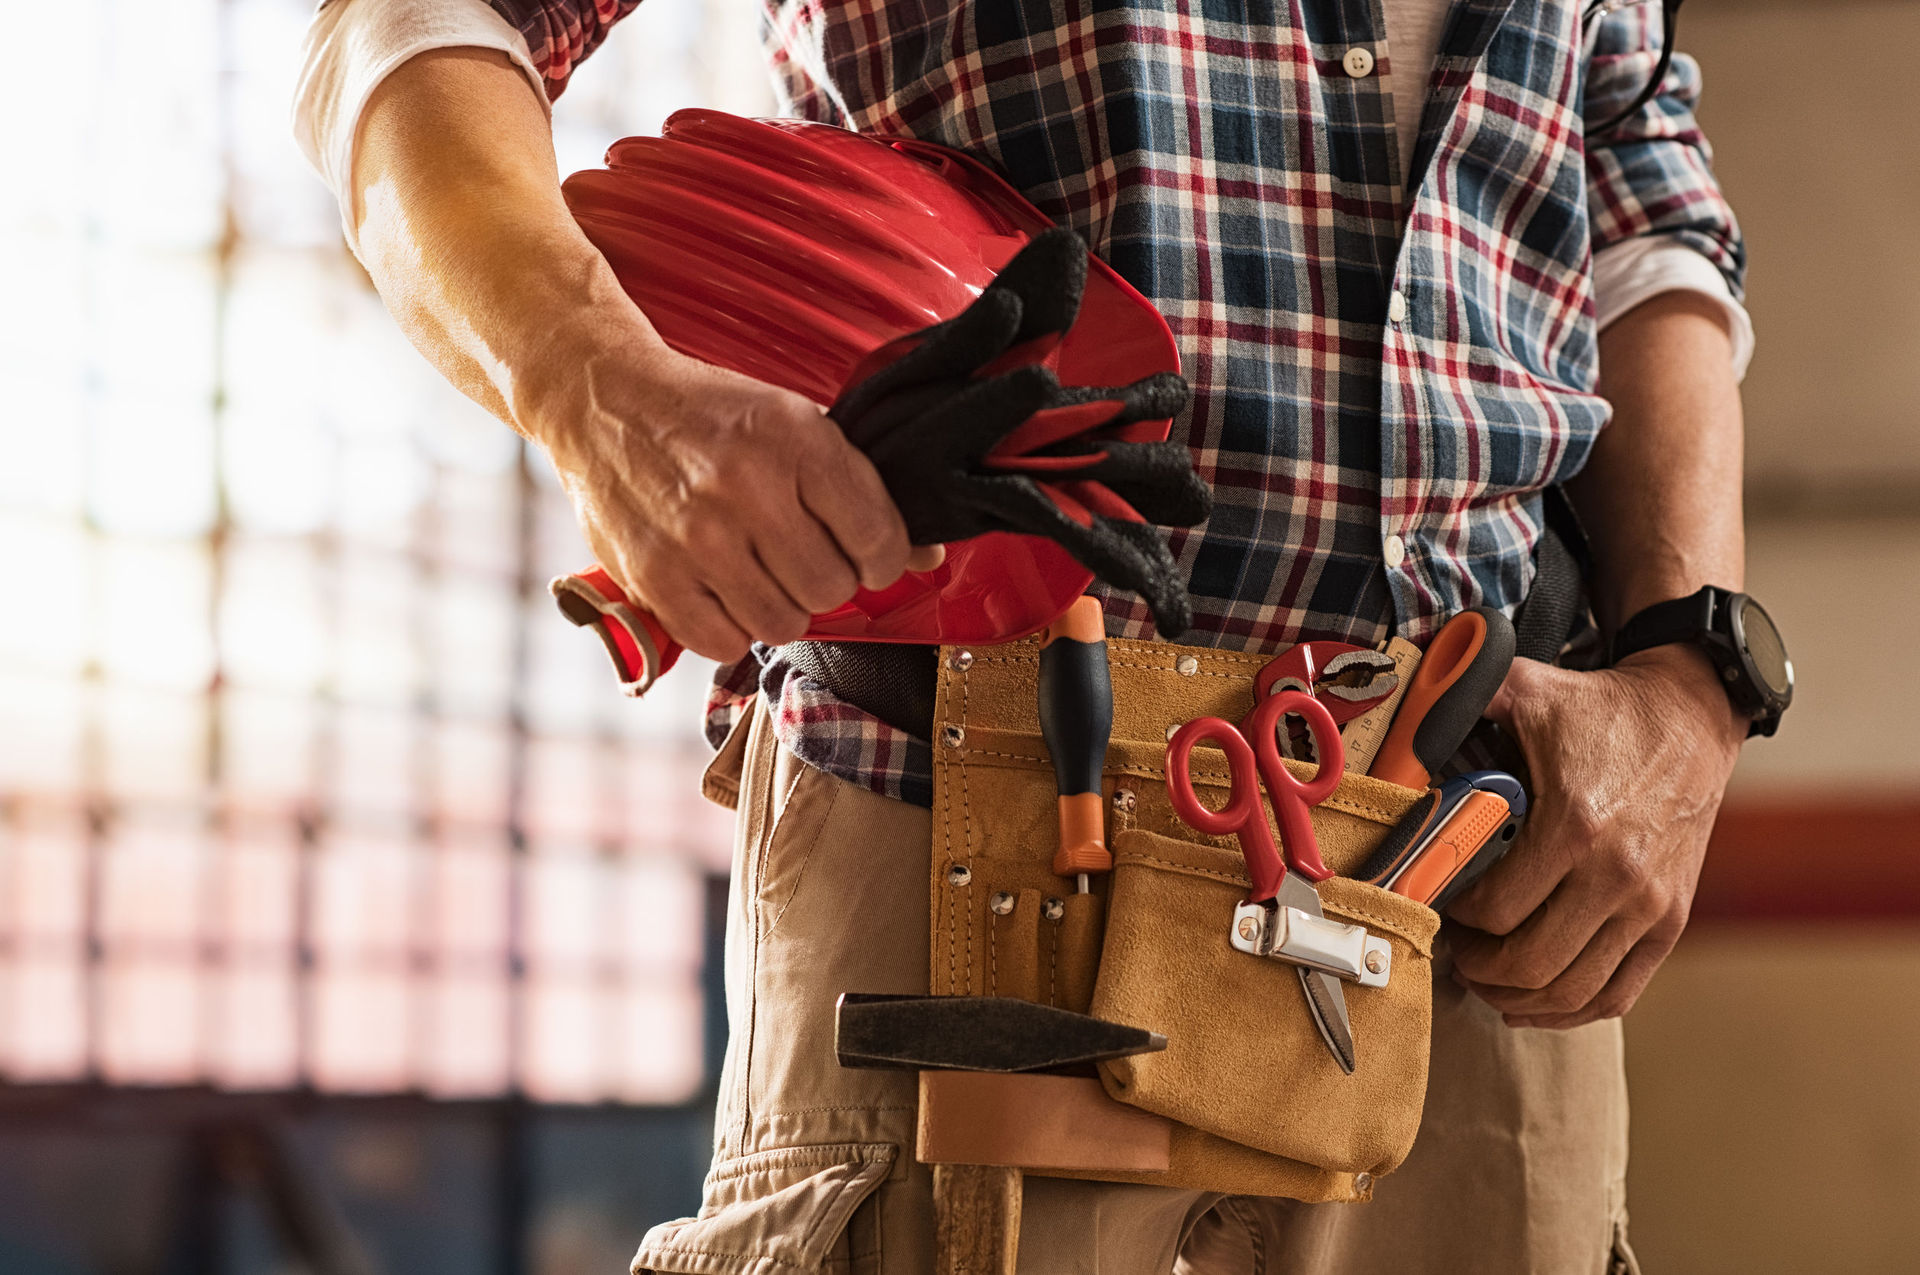 Auckland builder awarded $24k after boss stops paying him